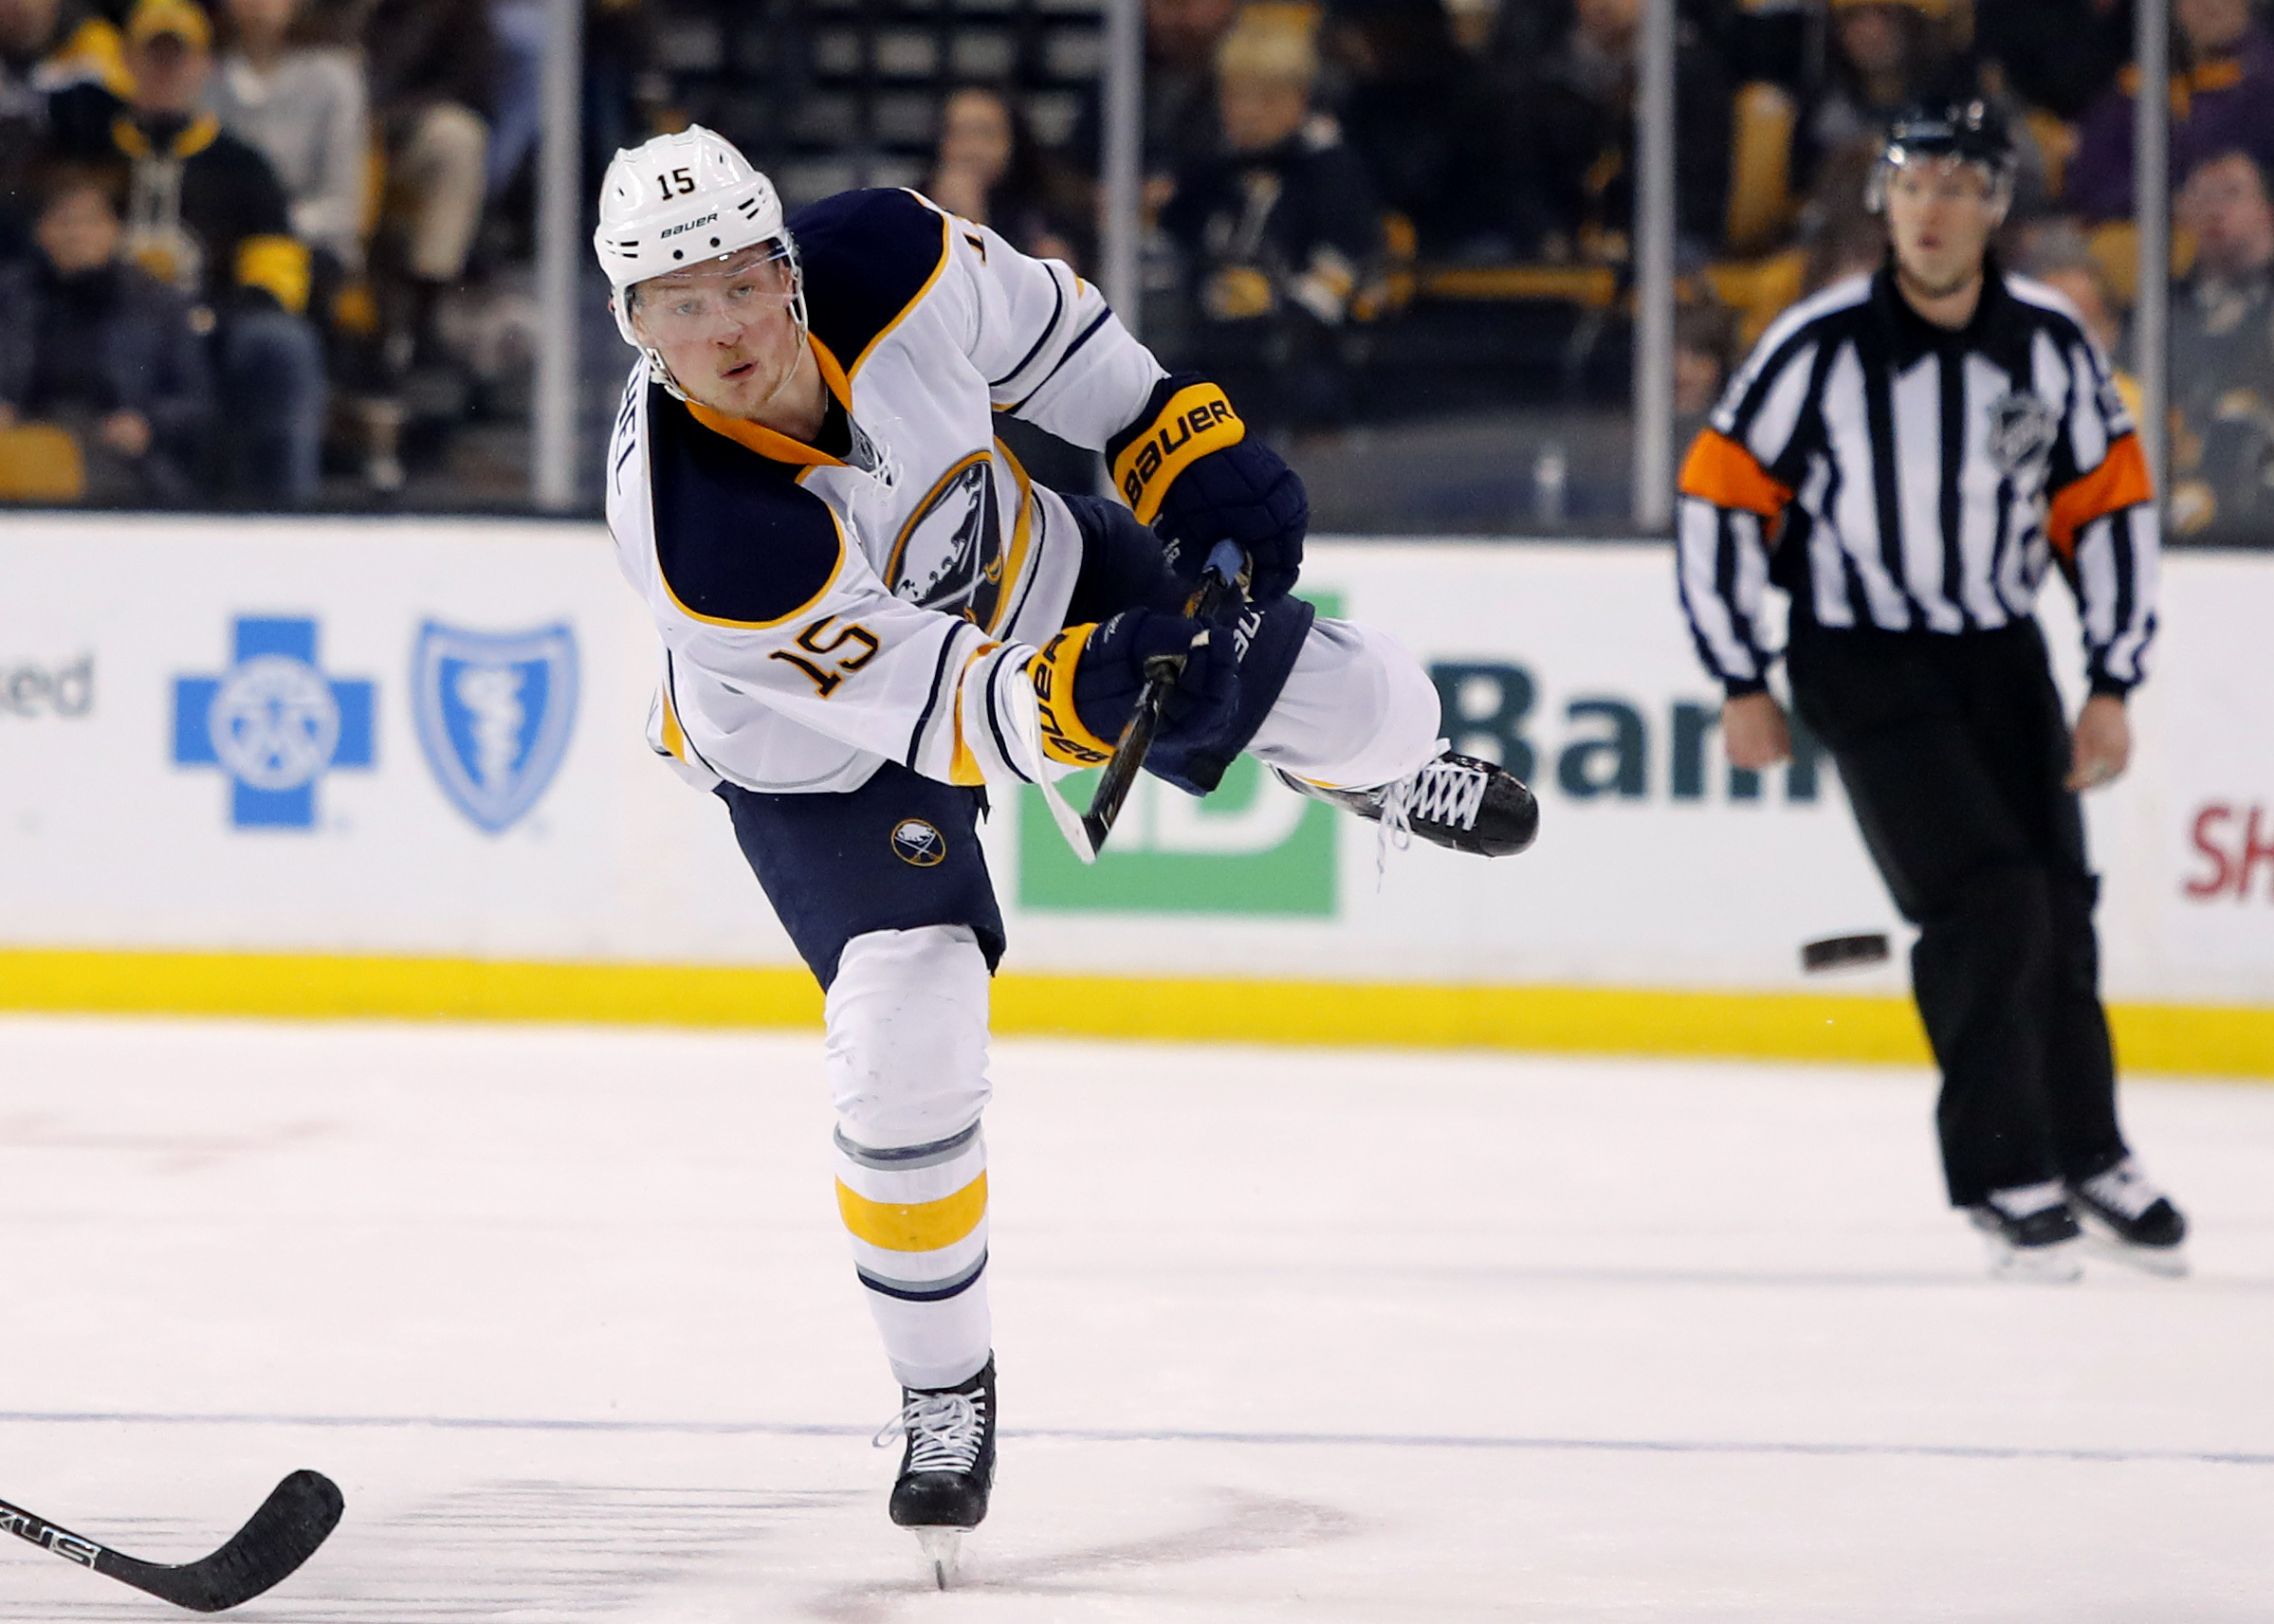 Jack Eichel fires the puck into the Boston zone during the third period Saturday (Winslow Townson-USA TODAY Sports)